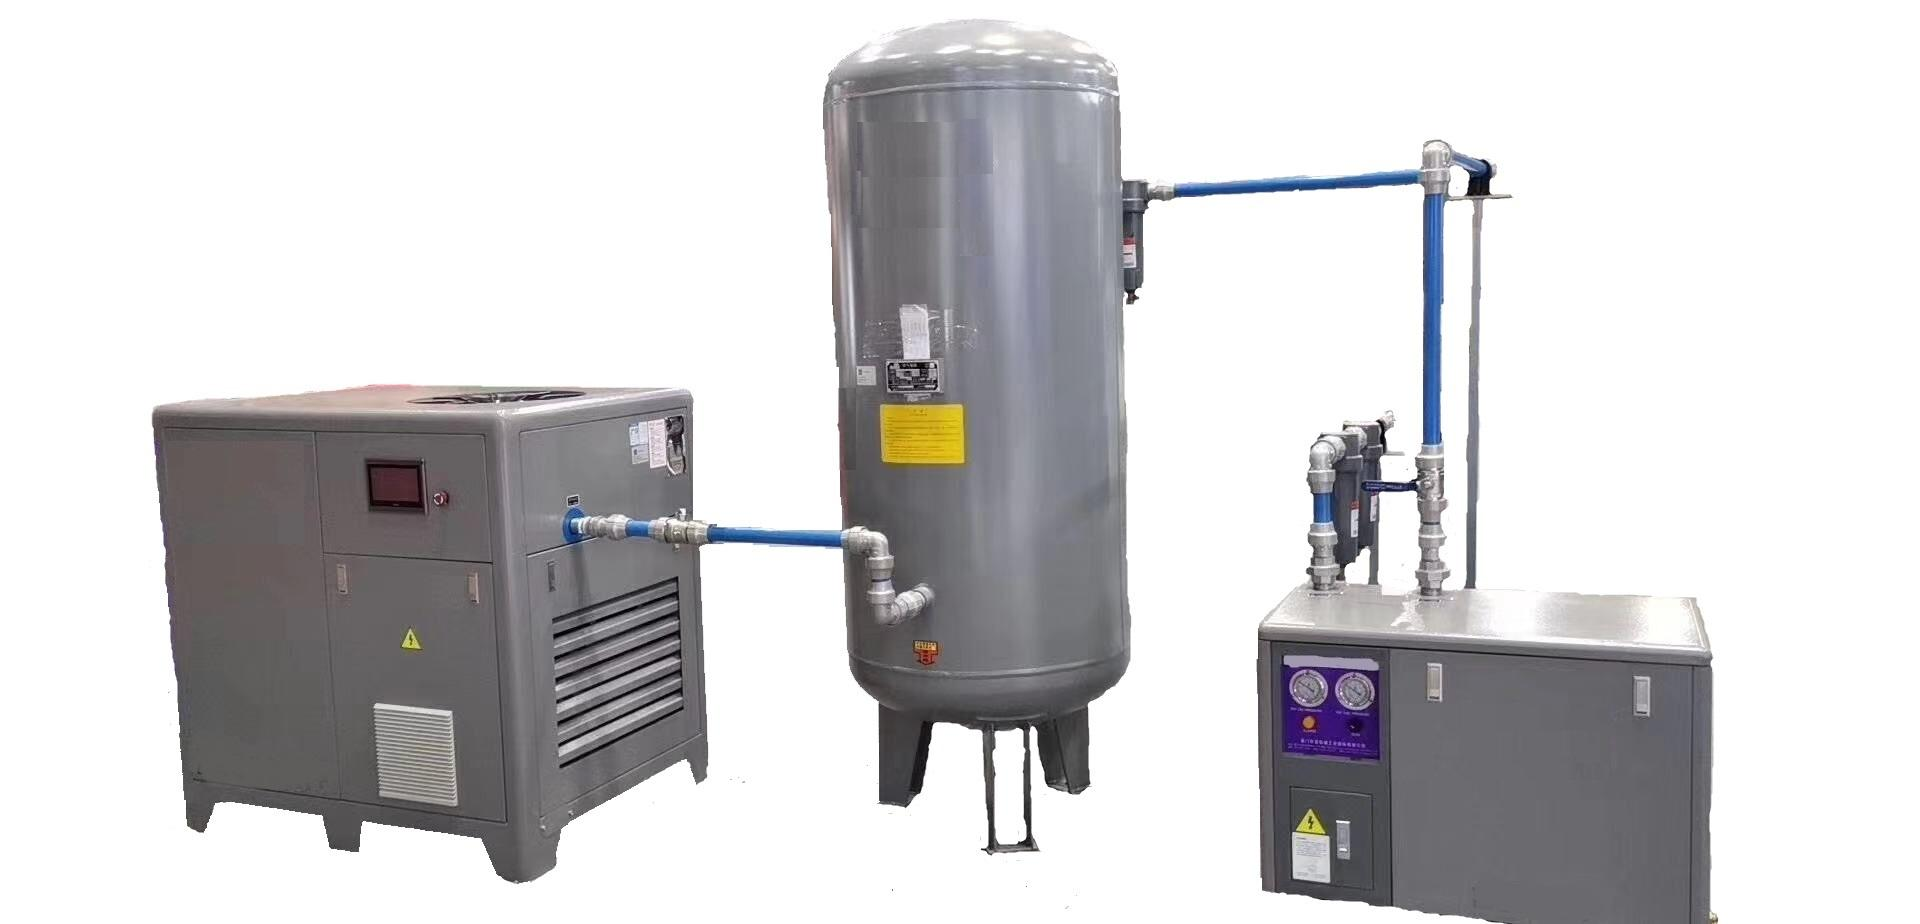 Compressor and air tank and air dryer machine,